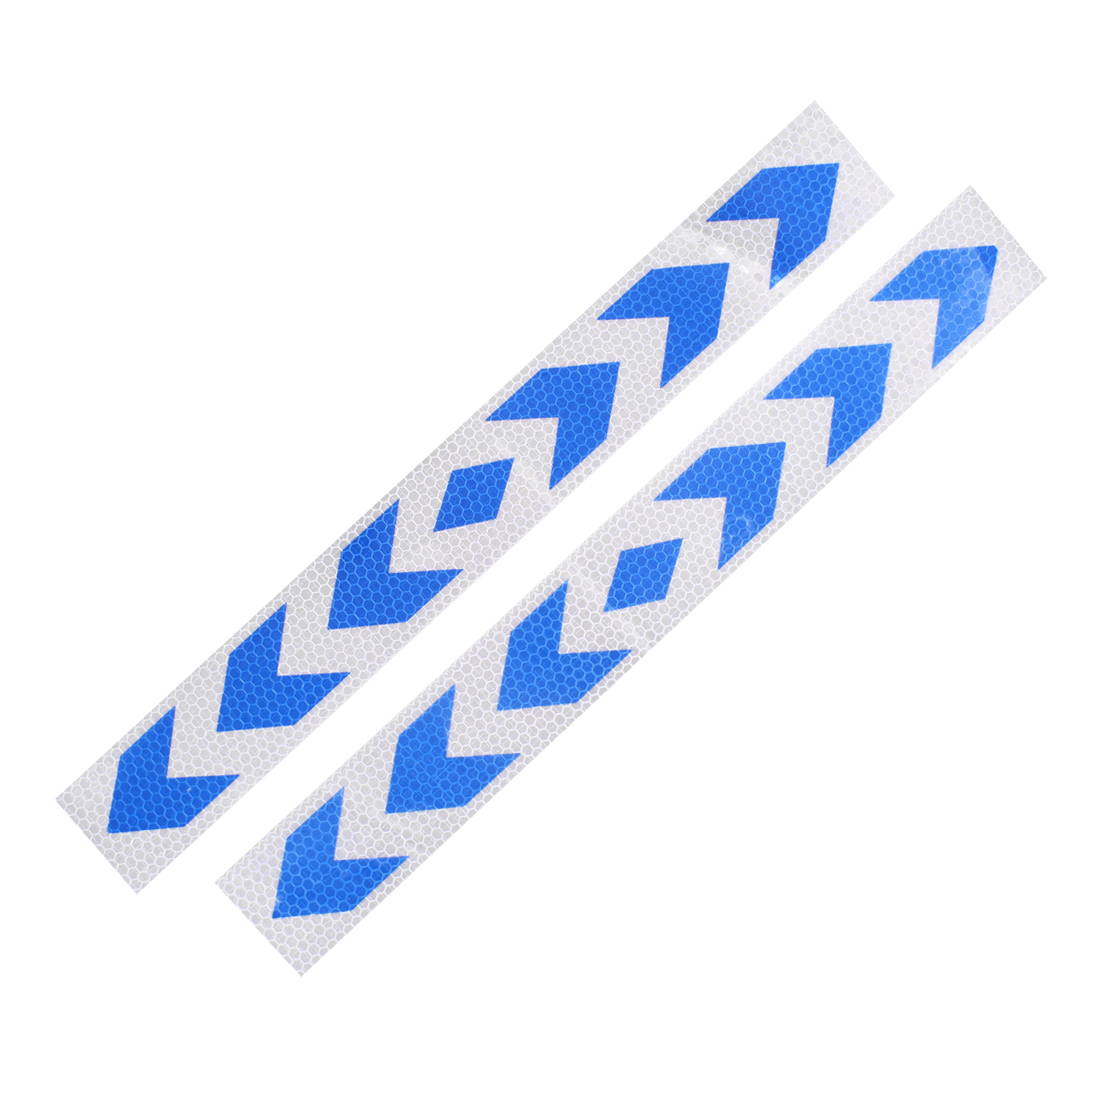 2 Pcs Arrows Printed Self Adhesive Type Car Reflective Warning Sign Sticker Tape Blue White